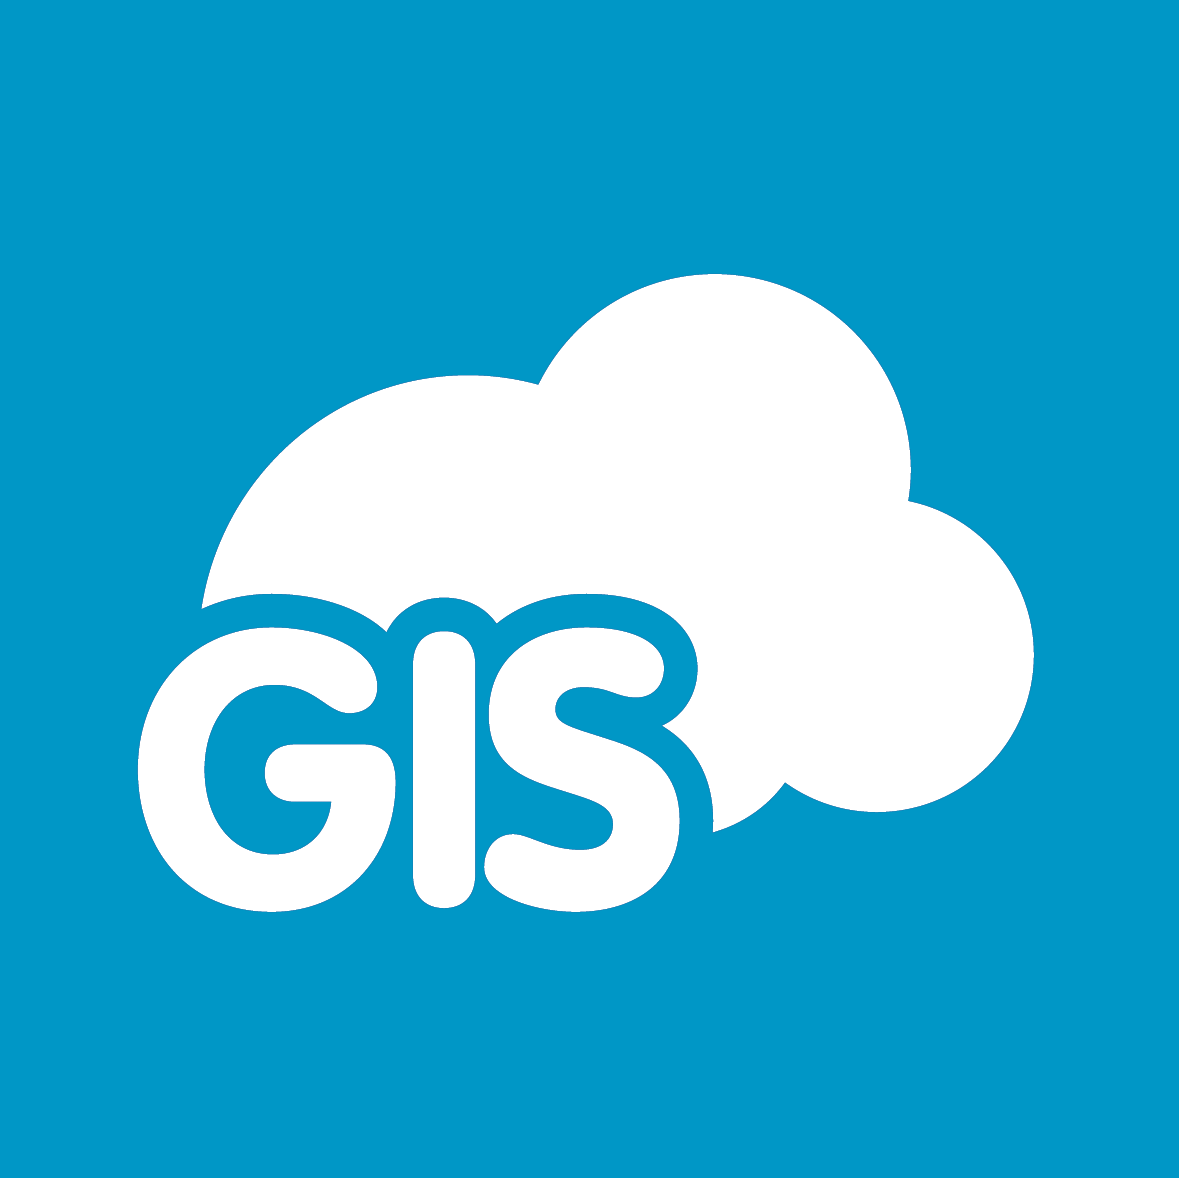 https://ascentagegroup.com/wp-content/uploads/2019/09/GIS-Cloud.png